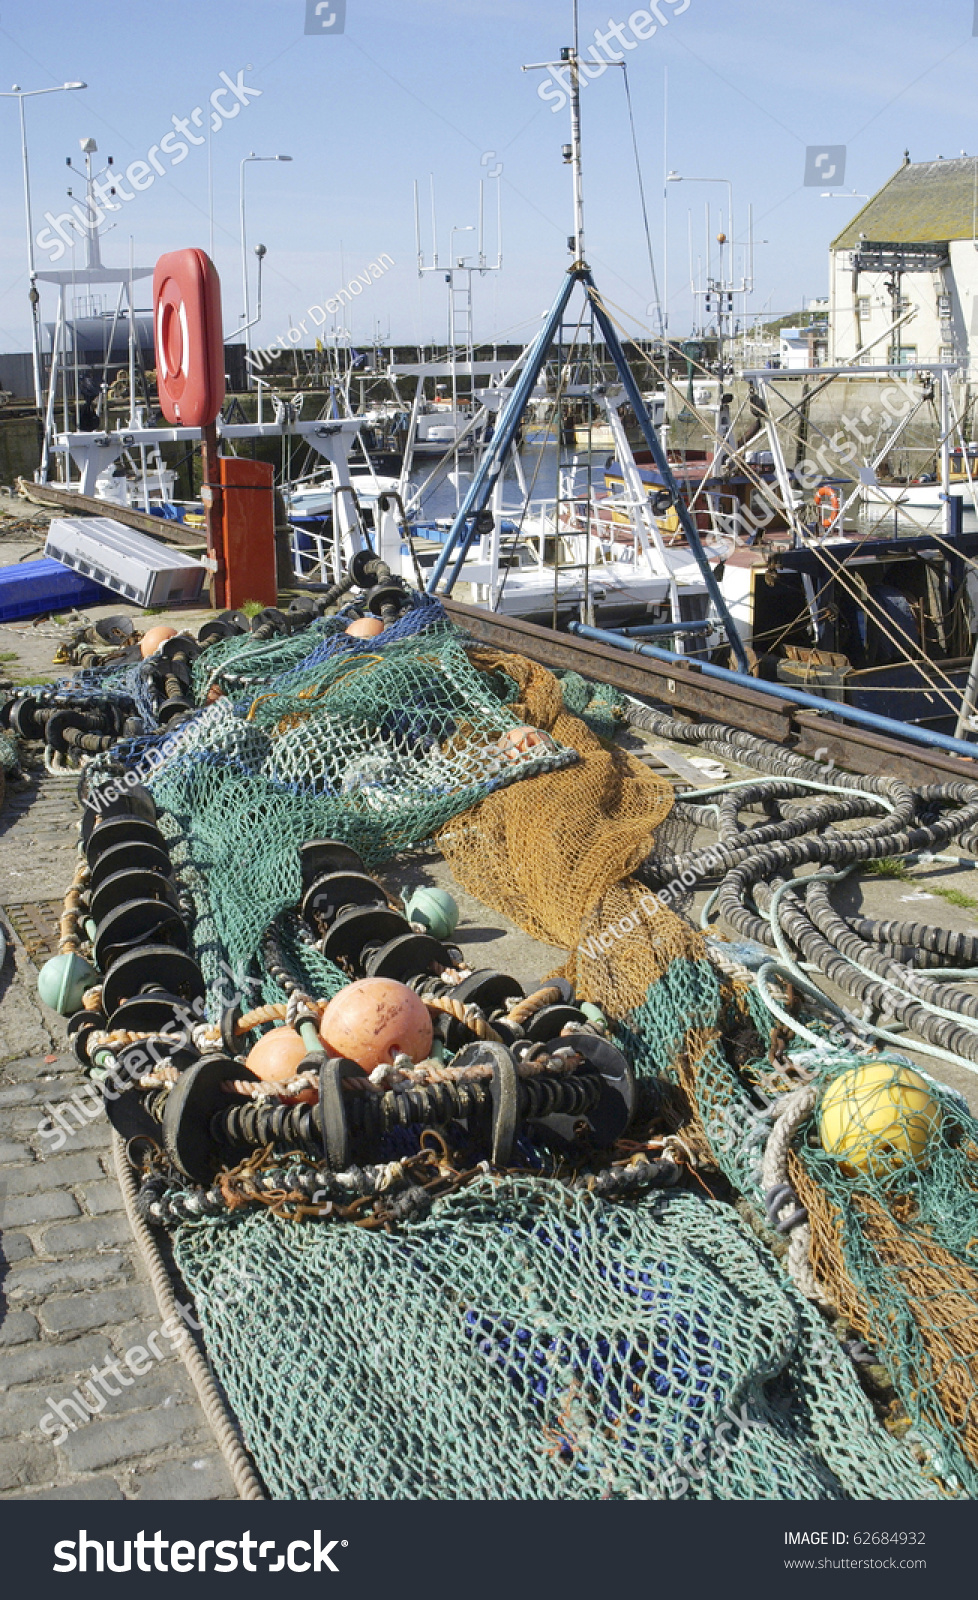 fishing nets and deep sea fishing equipment lying on pier with, Reel Combo